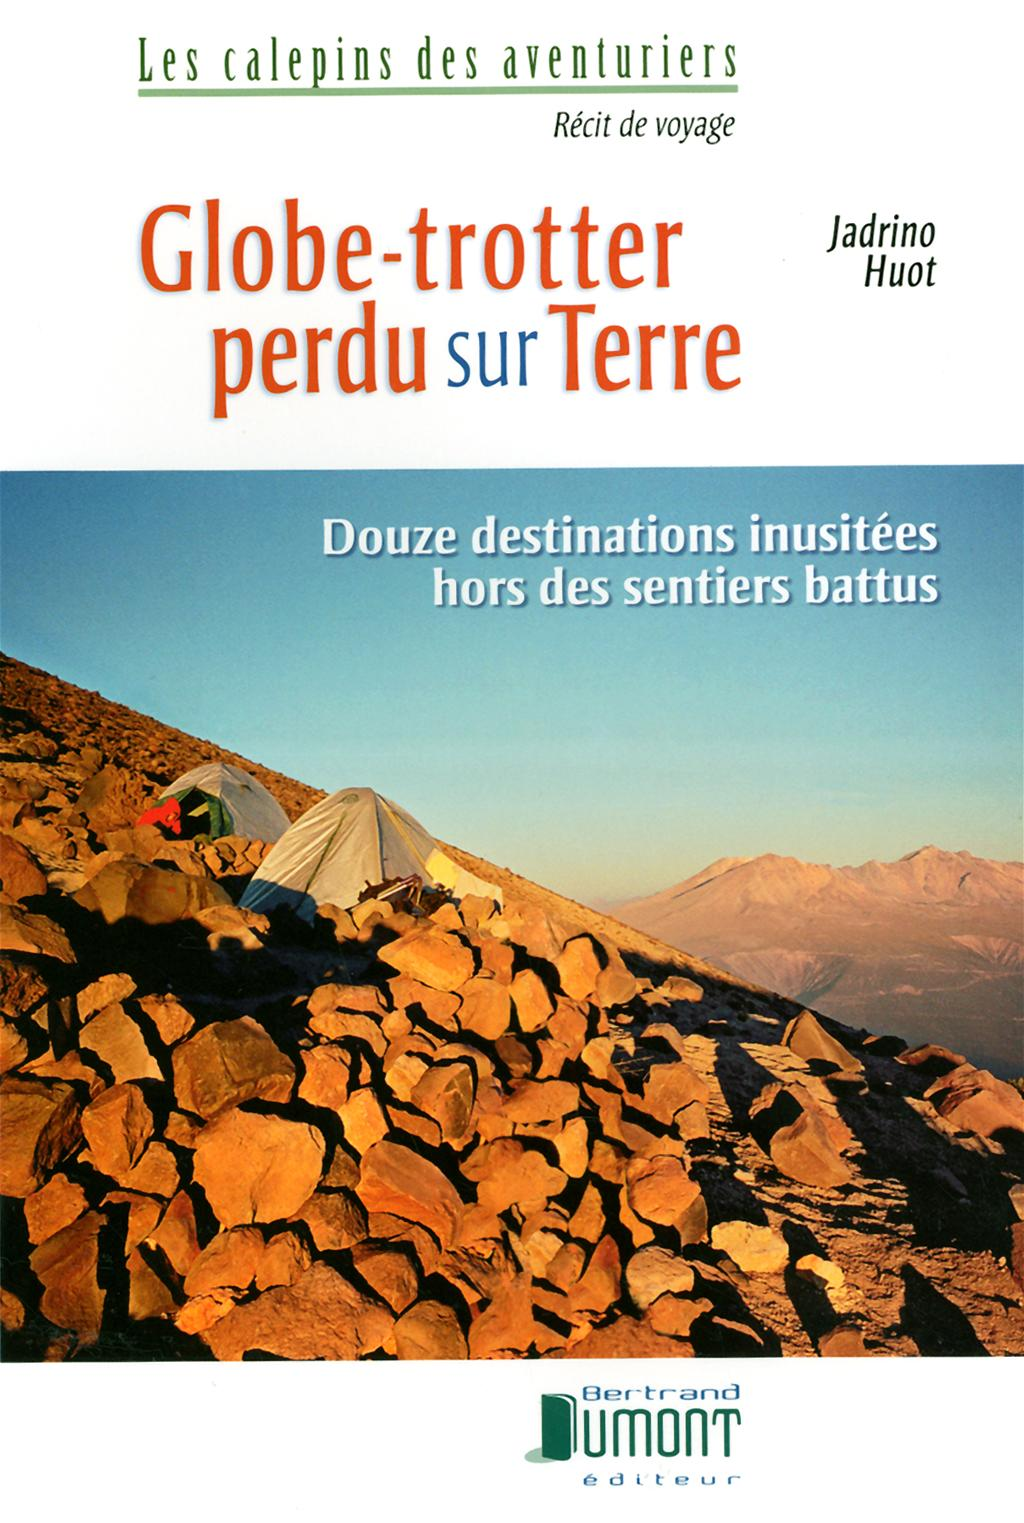 GLOBE-TROTTER PERDU SUR TERRE